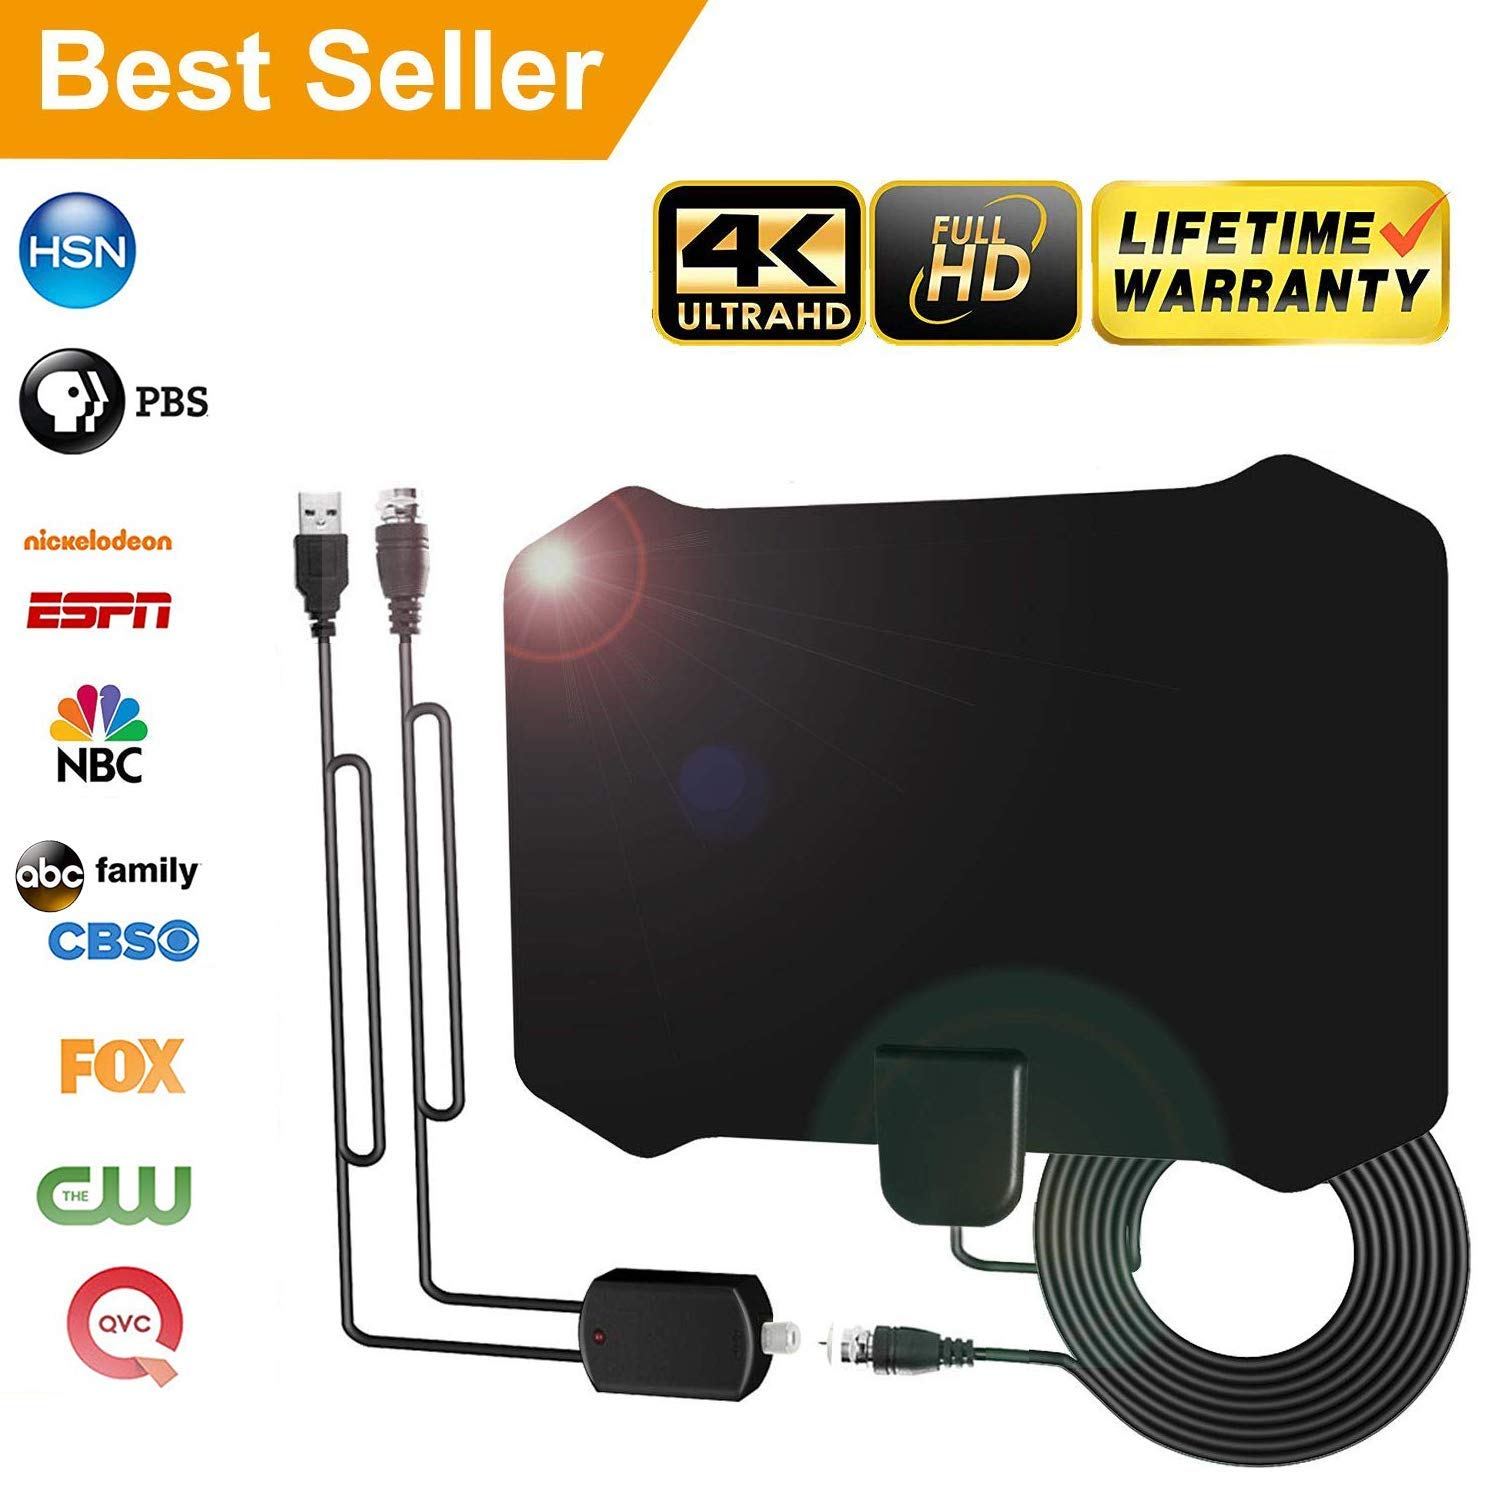 [2019Upgraded] HDTV Antenna Amplified Digital HD TV Antenna 120+ Mile Range 4K 1080P Indoor Powerful HDTV Amplifier Signal Booster VHF UHF Freeview Television Local Channels w/Detachable Sign (16.5Ft)